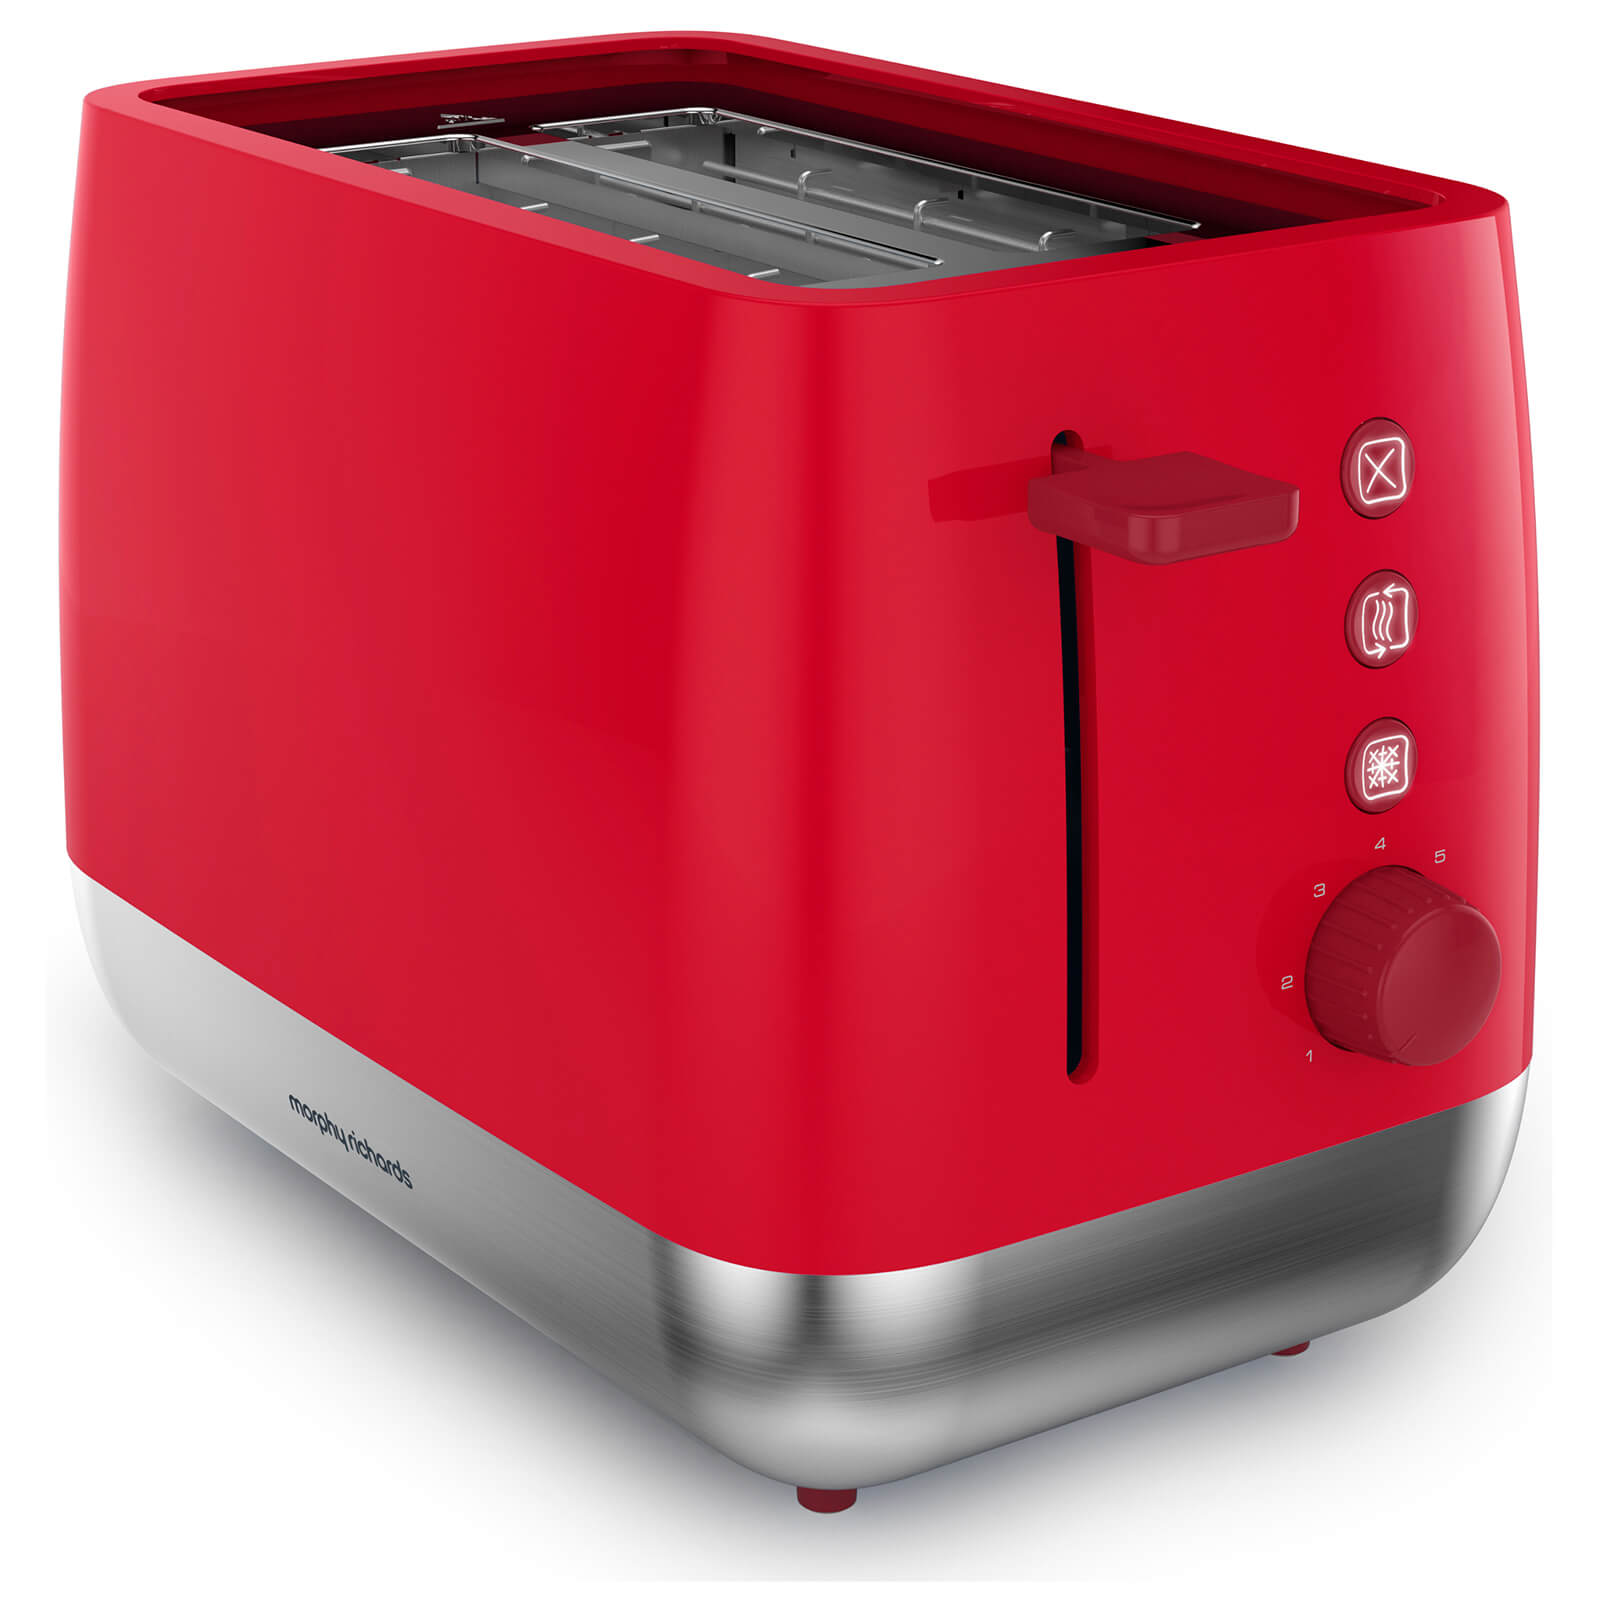 Morphy Richards 221112 Chroma 2 Slice Toaster - Poppy